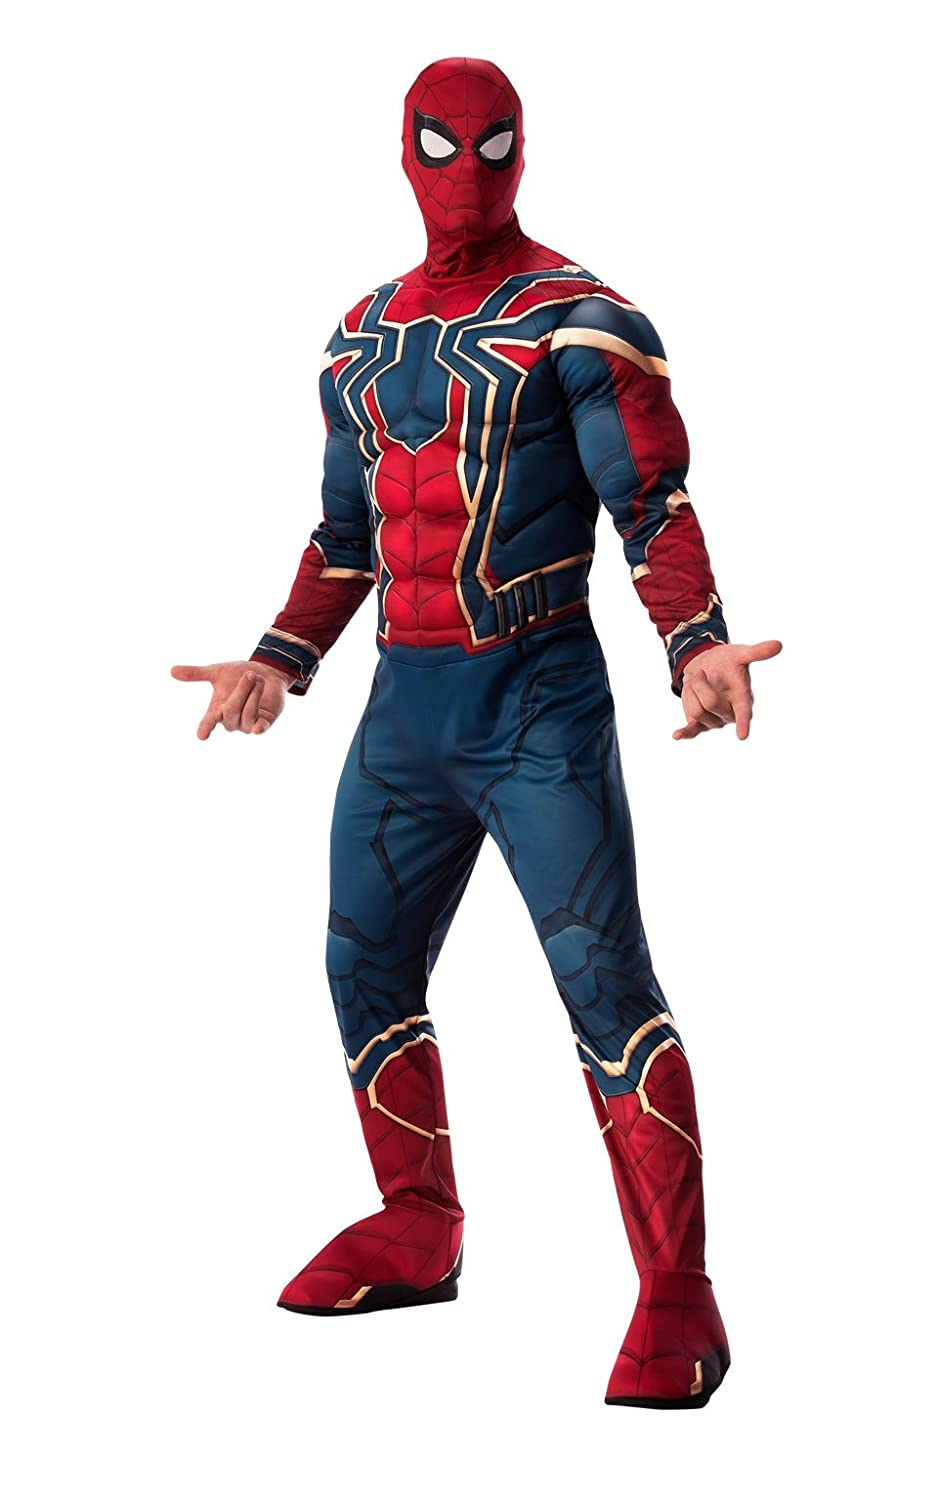 Marvel Avengers Infinity War Deluxe Iron Spider-Man Adult Costume - X-Large